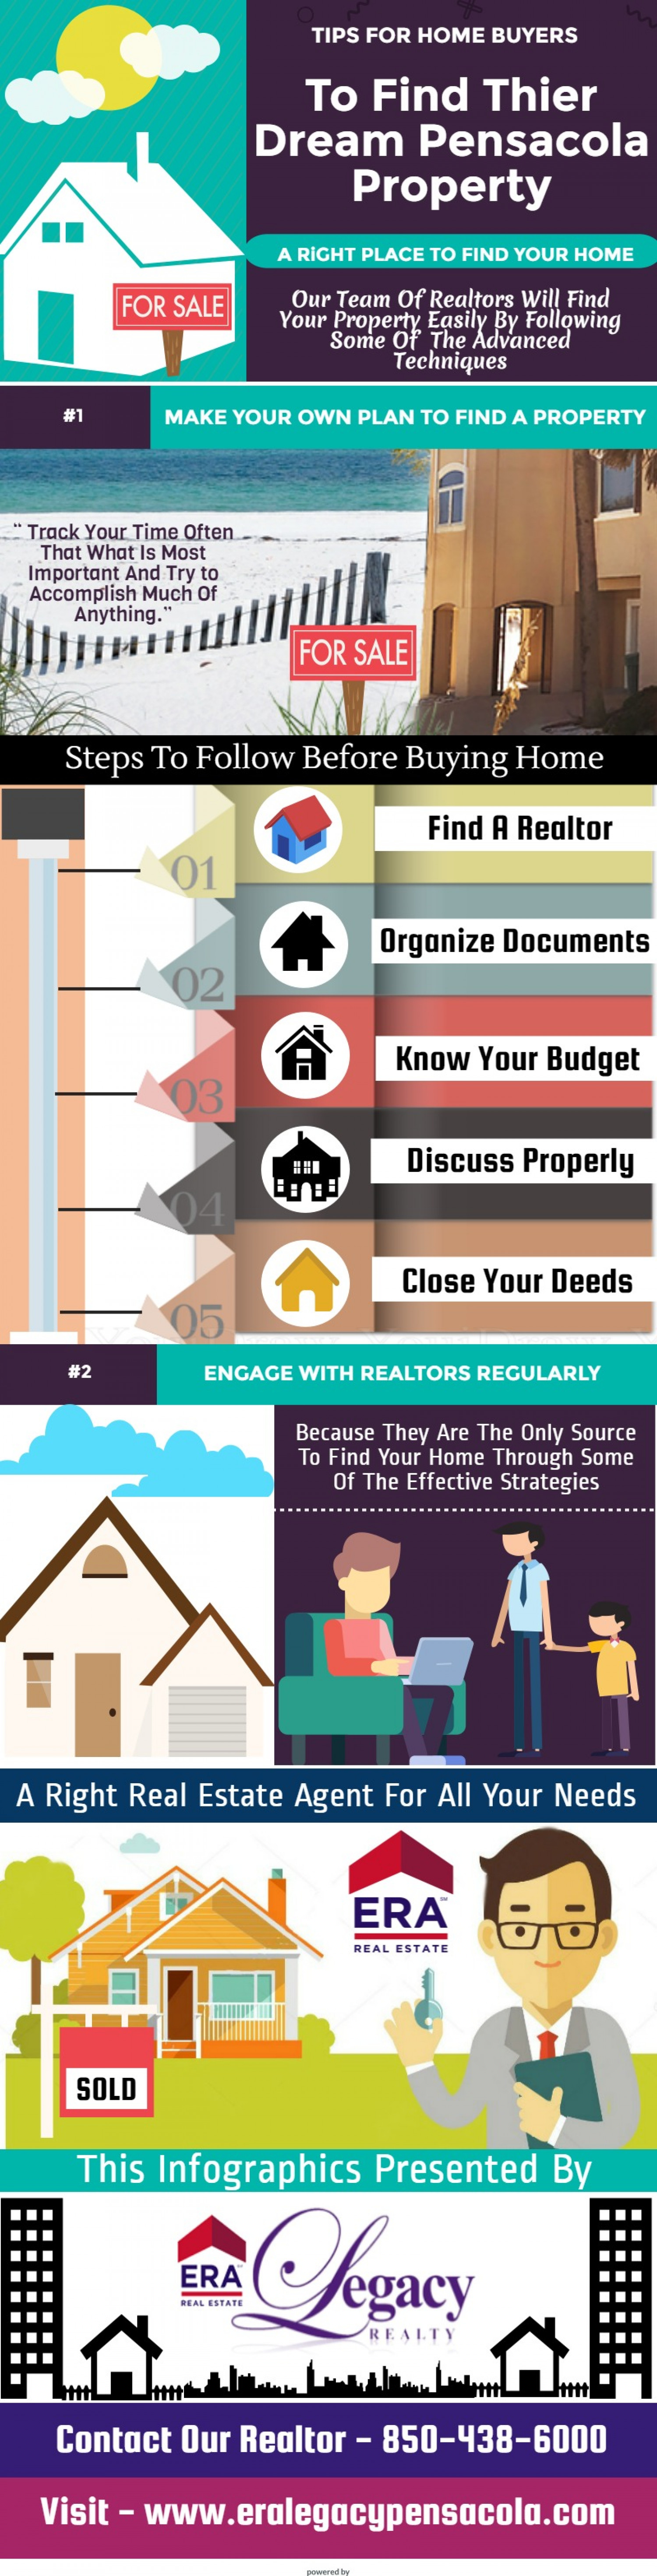 Pensacola Luxury Real Estate Homes For Sale  Infographic